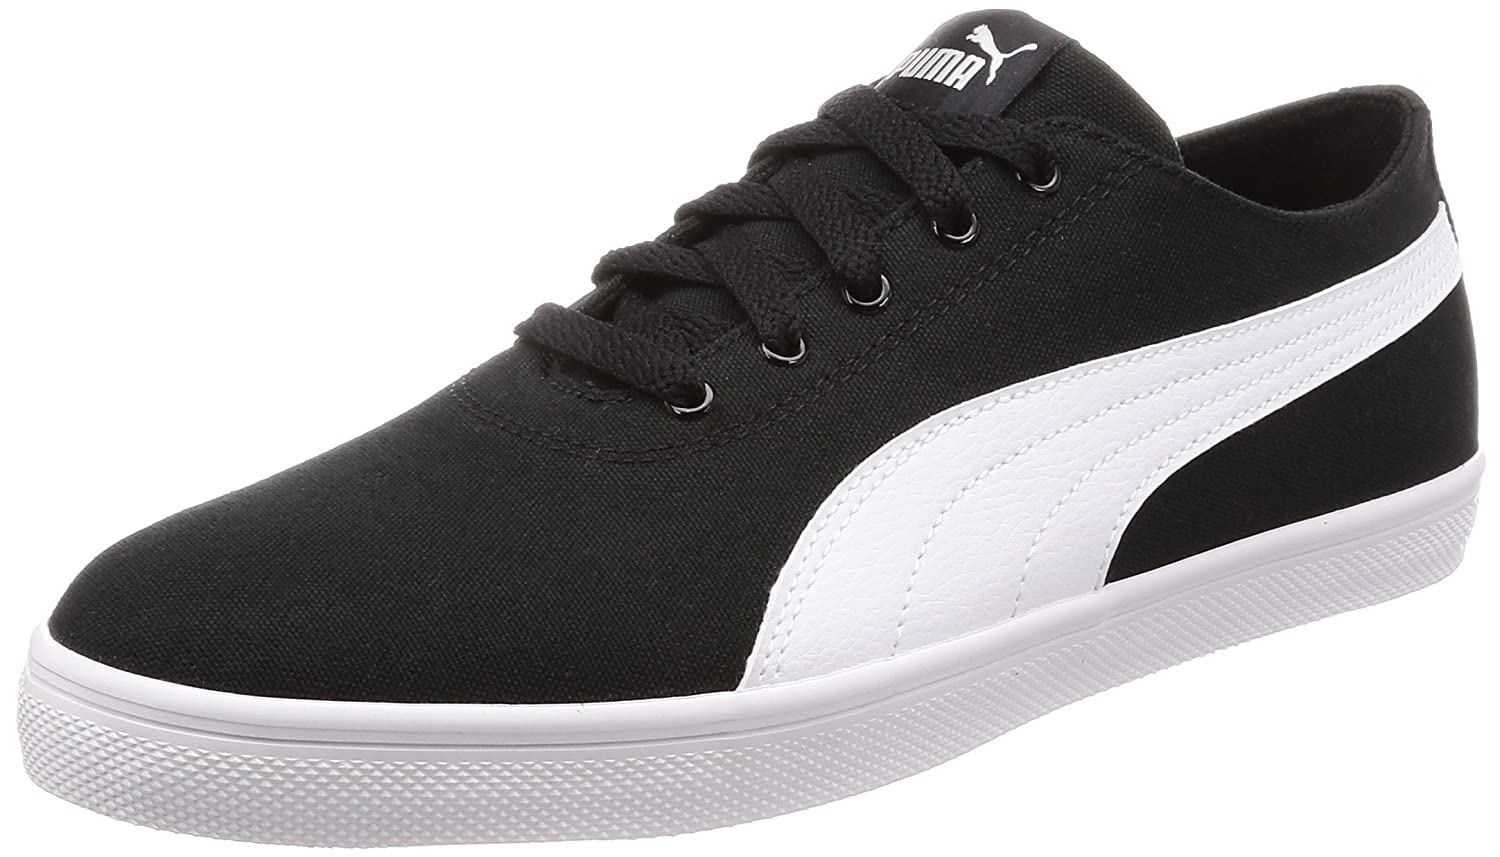 fbc6a20fb9f7 Puma Men s Urban Sneakers  Buy Online at Low Prices in India - Amazon.in